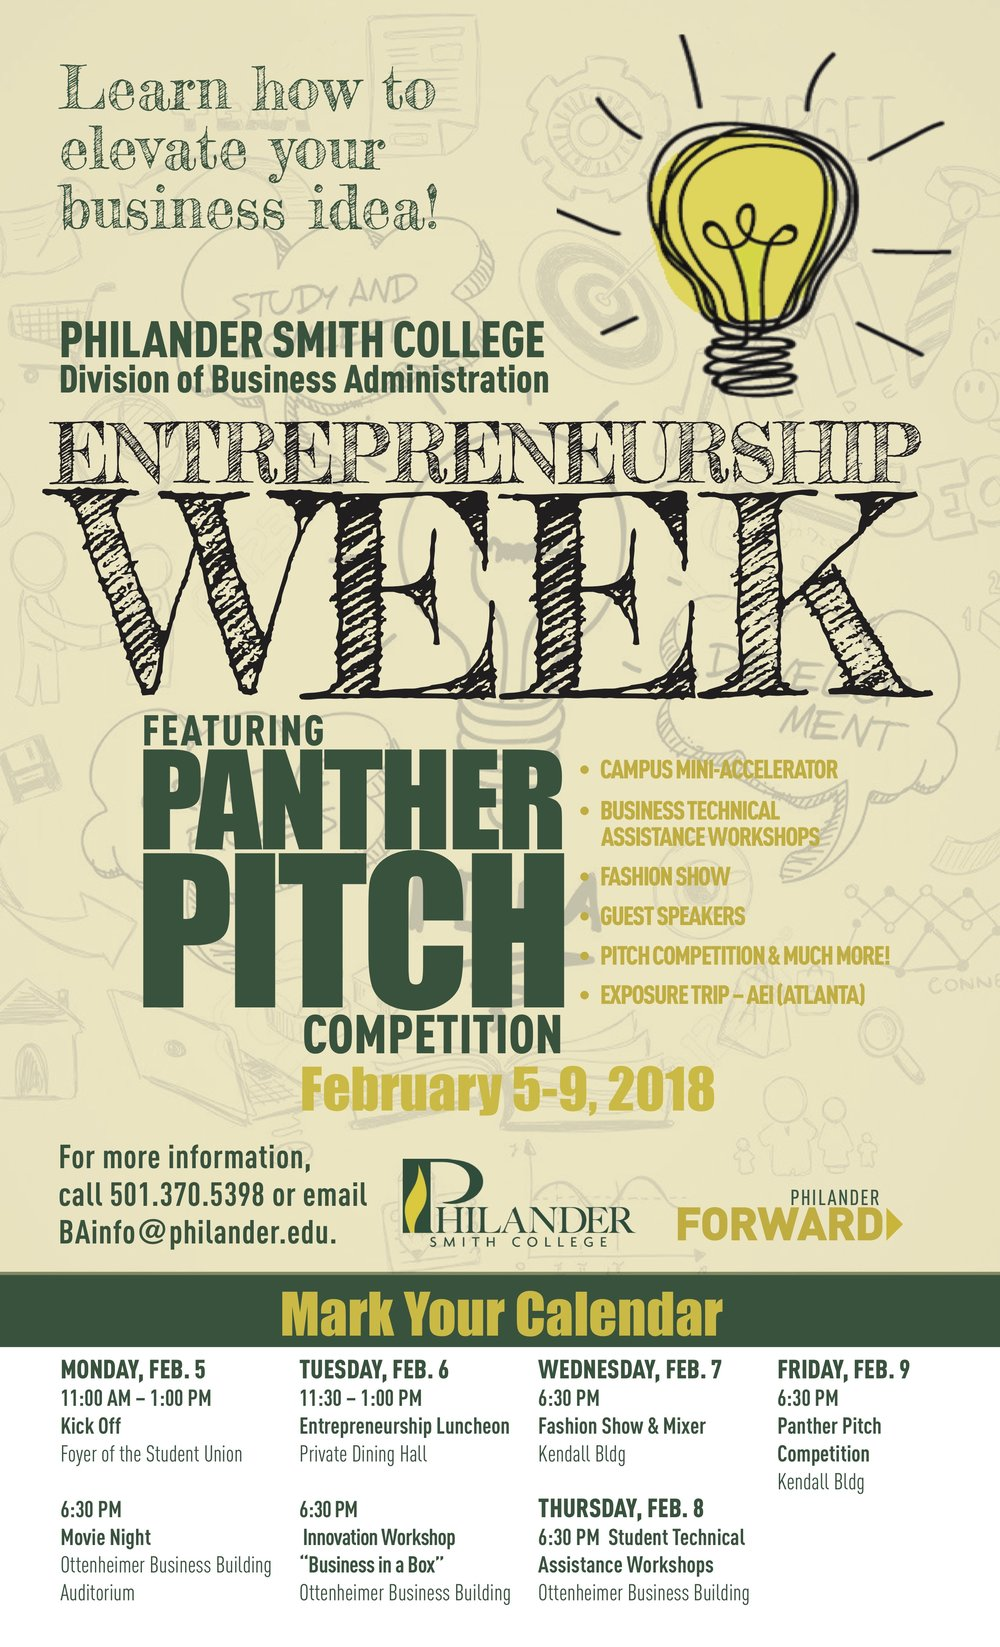 PSC Entrepreneurship Week Flyer 9(1).jpg